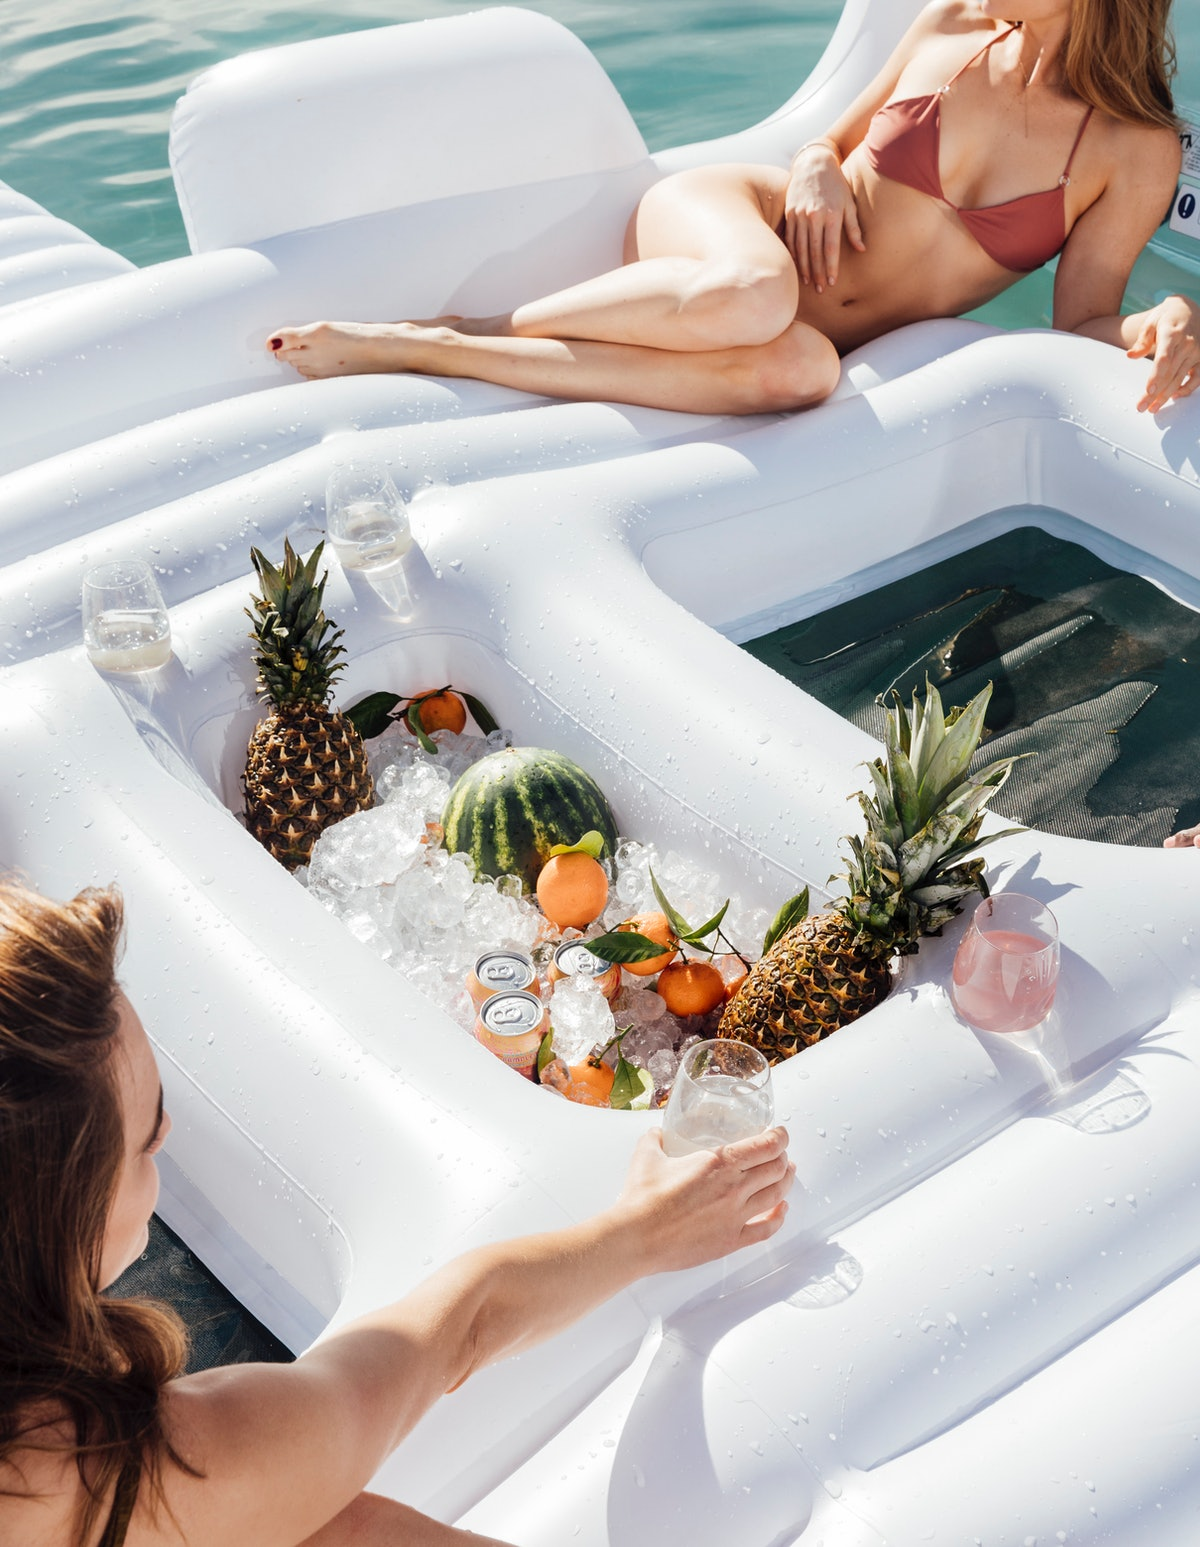 Two girls lounge on FUNBOY's Giant Dayclub pool float that has a cooler filled with drinks and fresh...